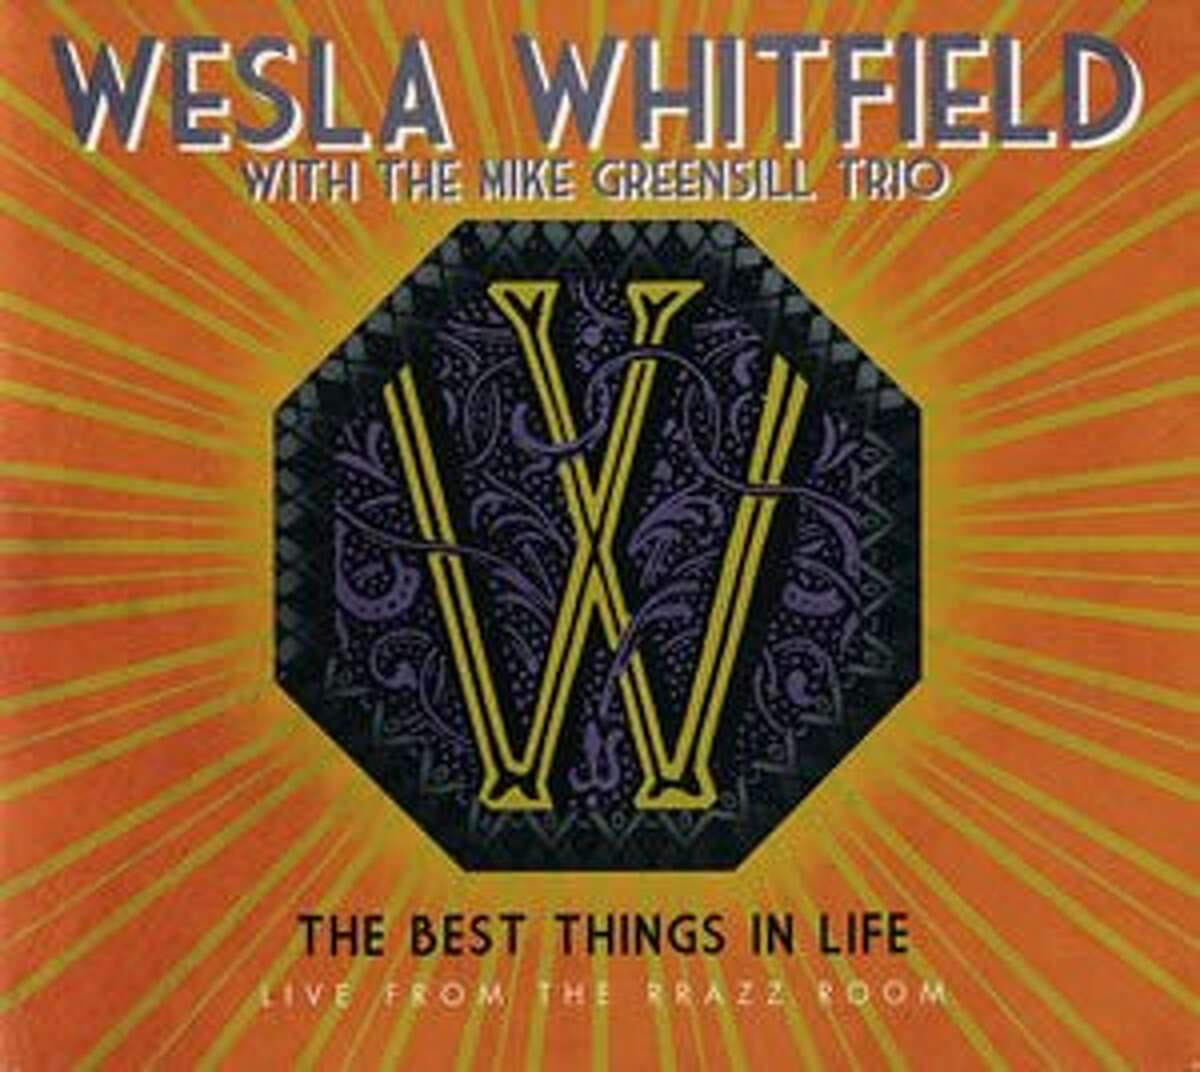 CD cover for Westla Whitfield's